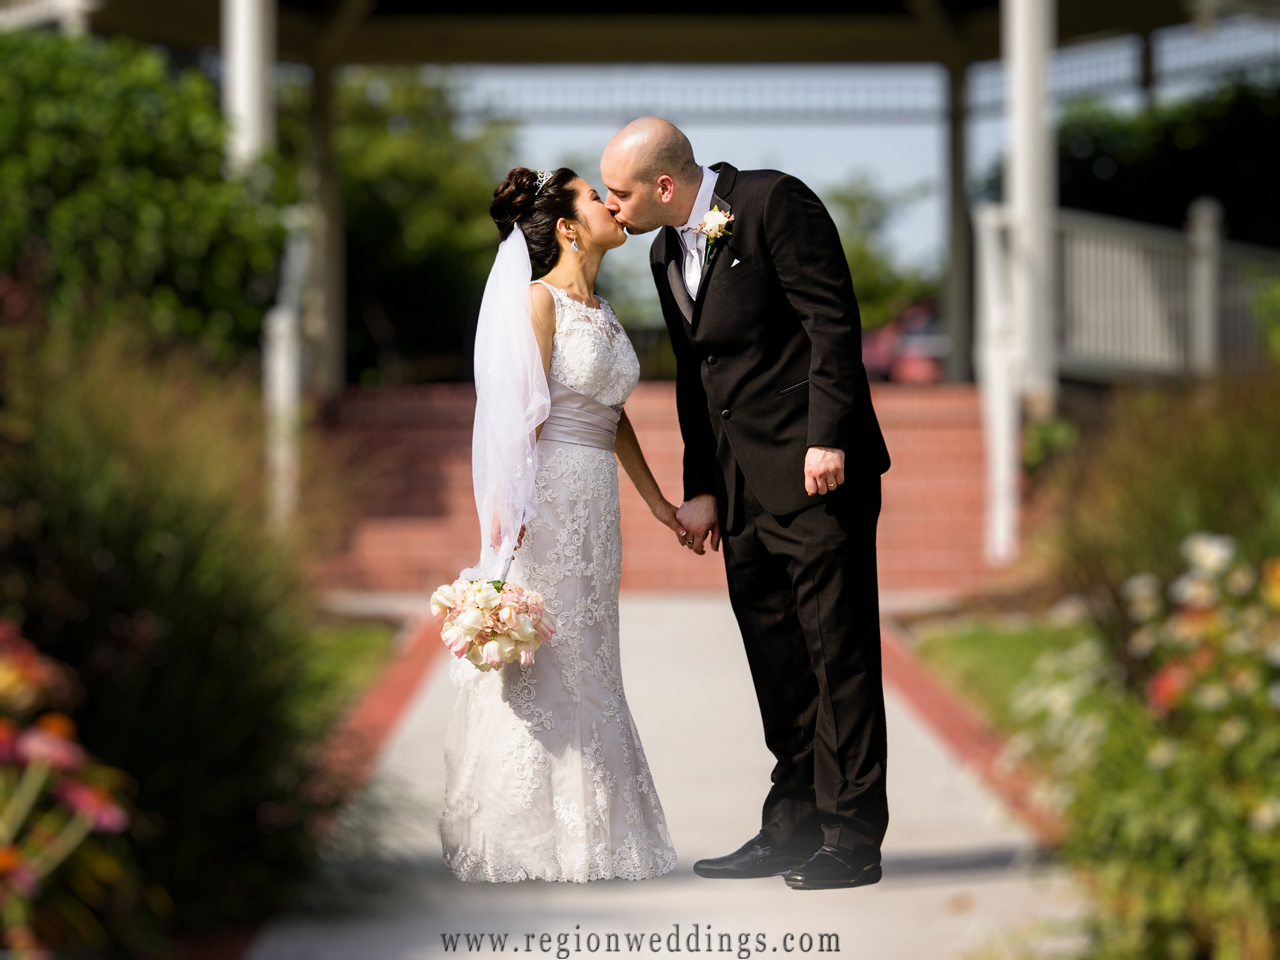 A newly married couple kiss in front of the gazebo at Ellendale Farms in Crown Point, Indiana.